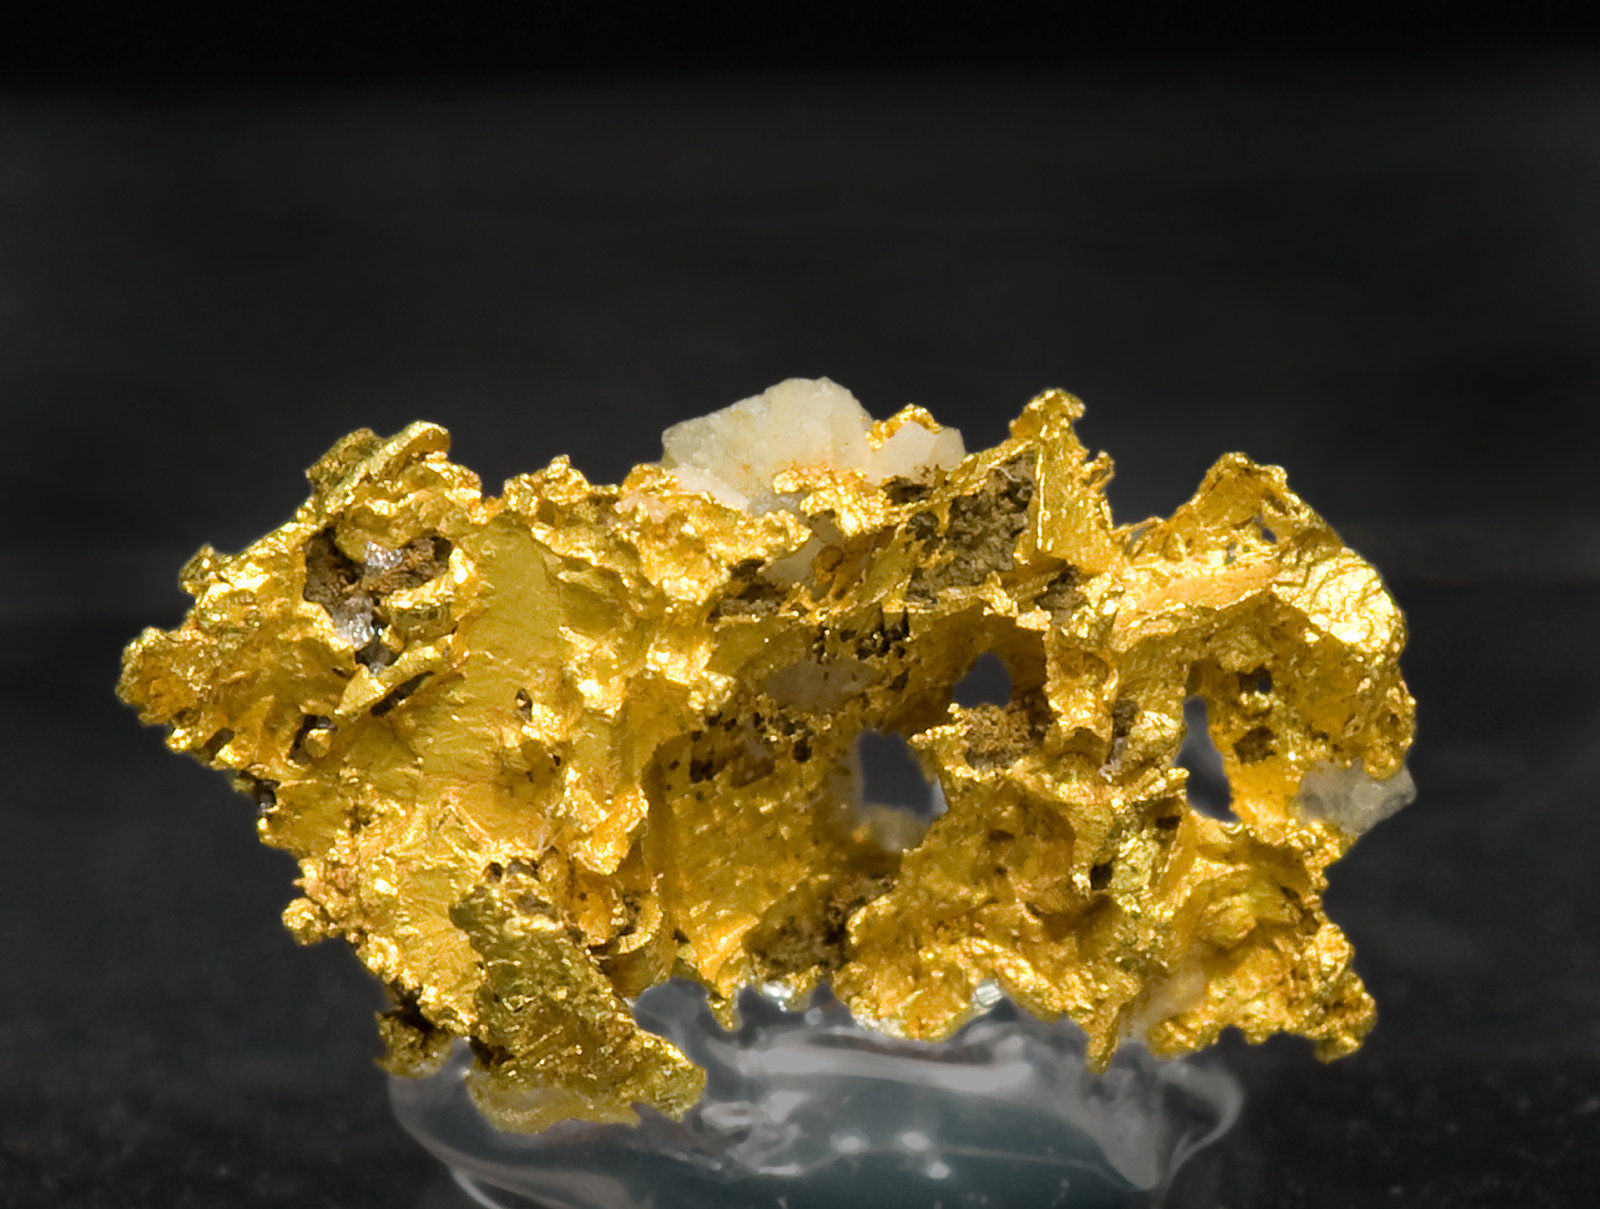 specimens/s_imagesV5/Gold-NL16V5f.jpg